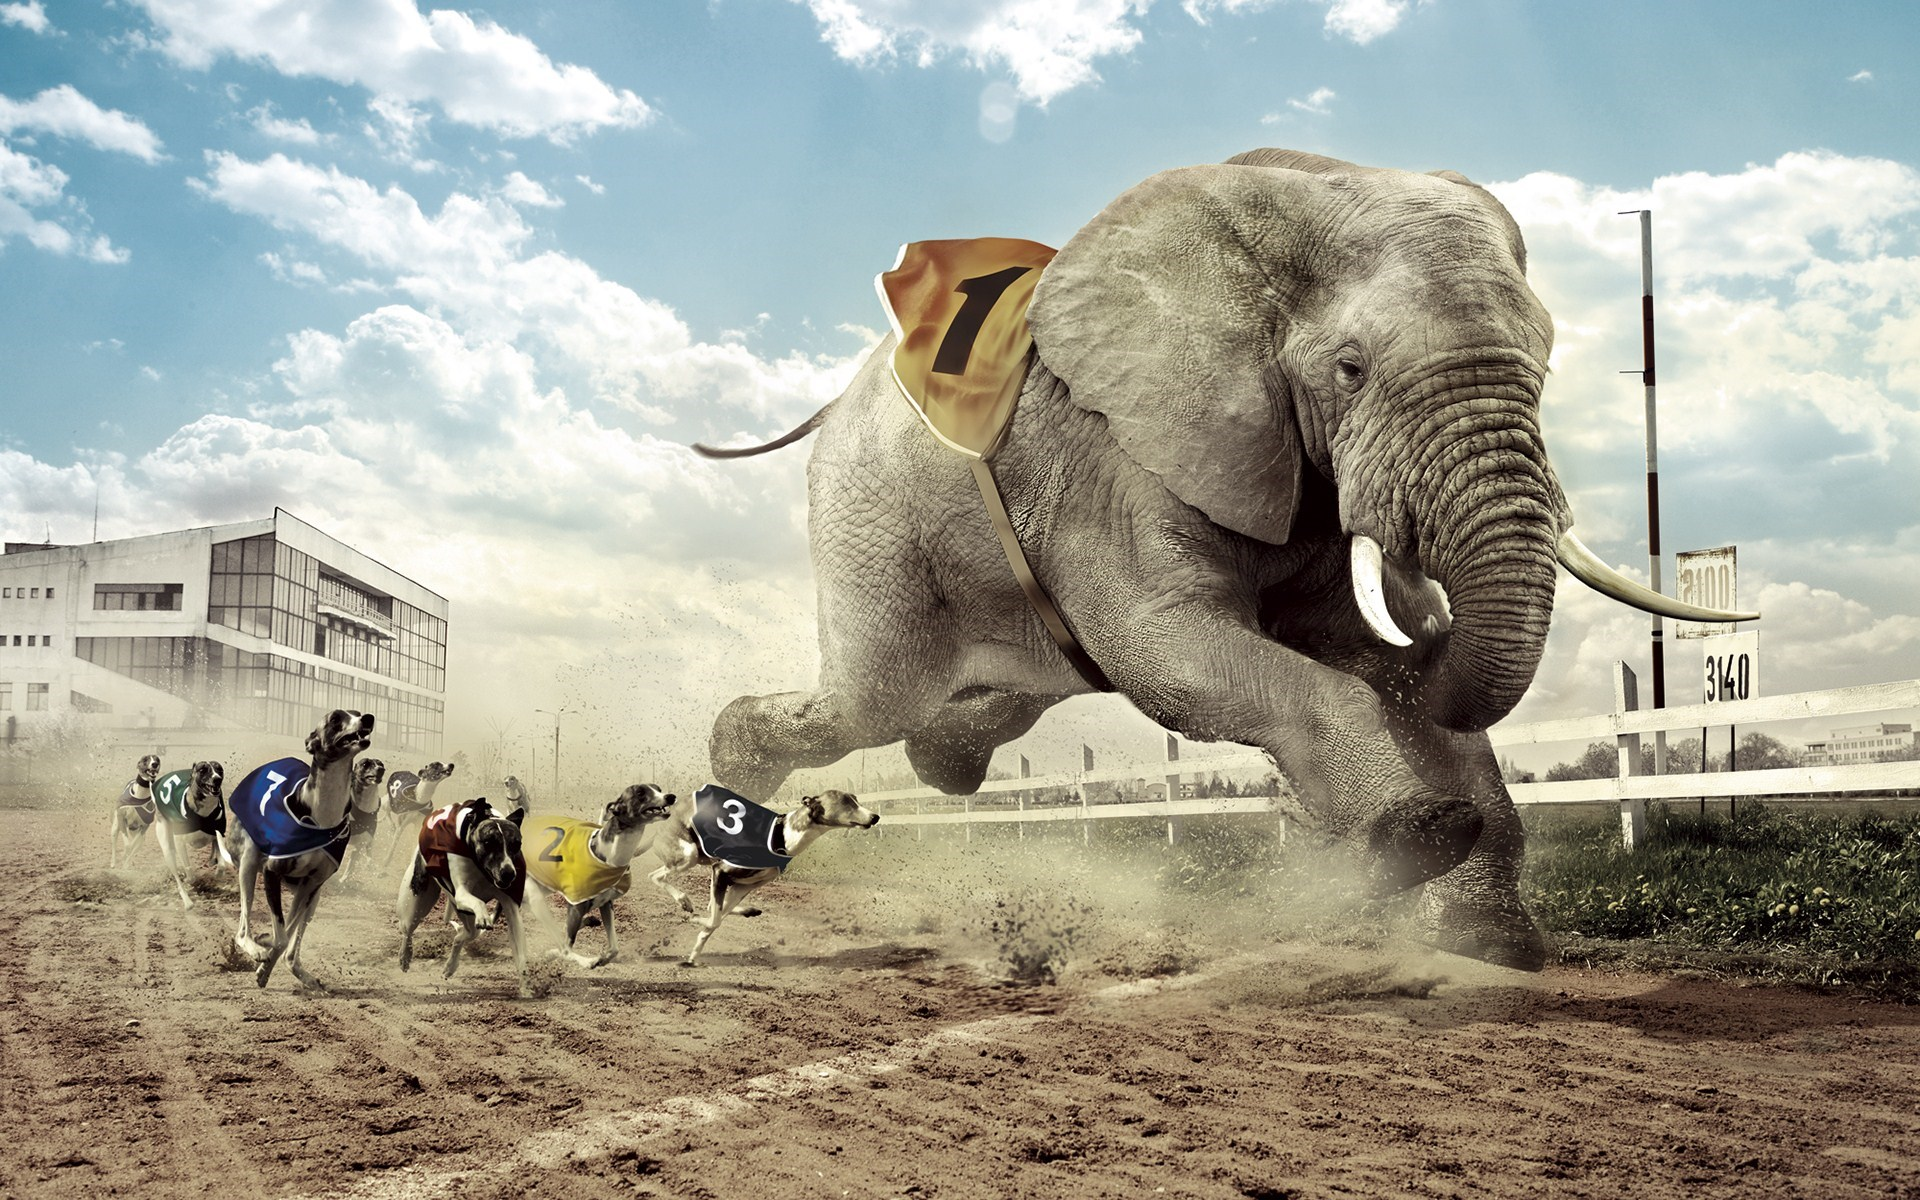 Competition Racing Dogs Elephant Funny Creative